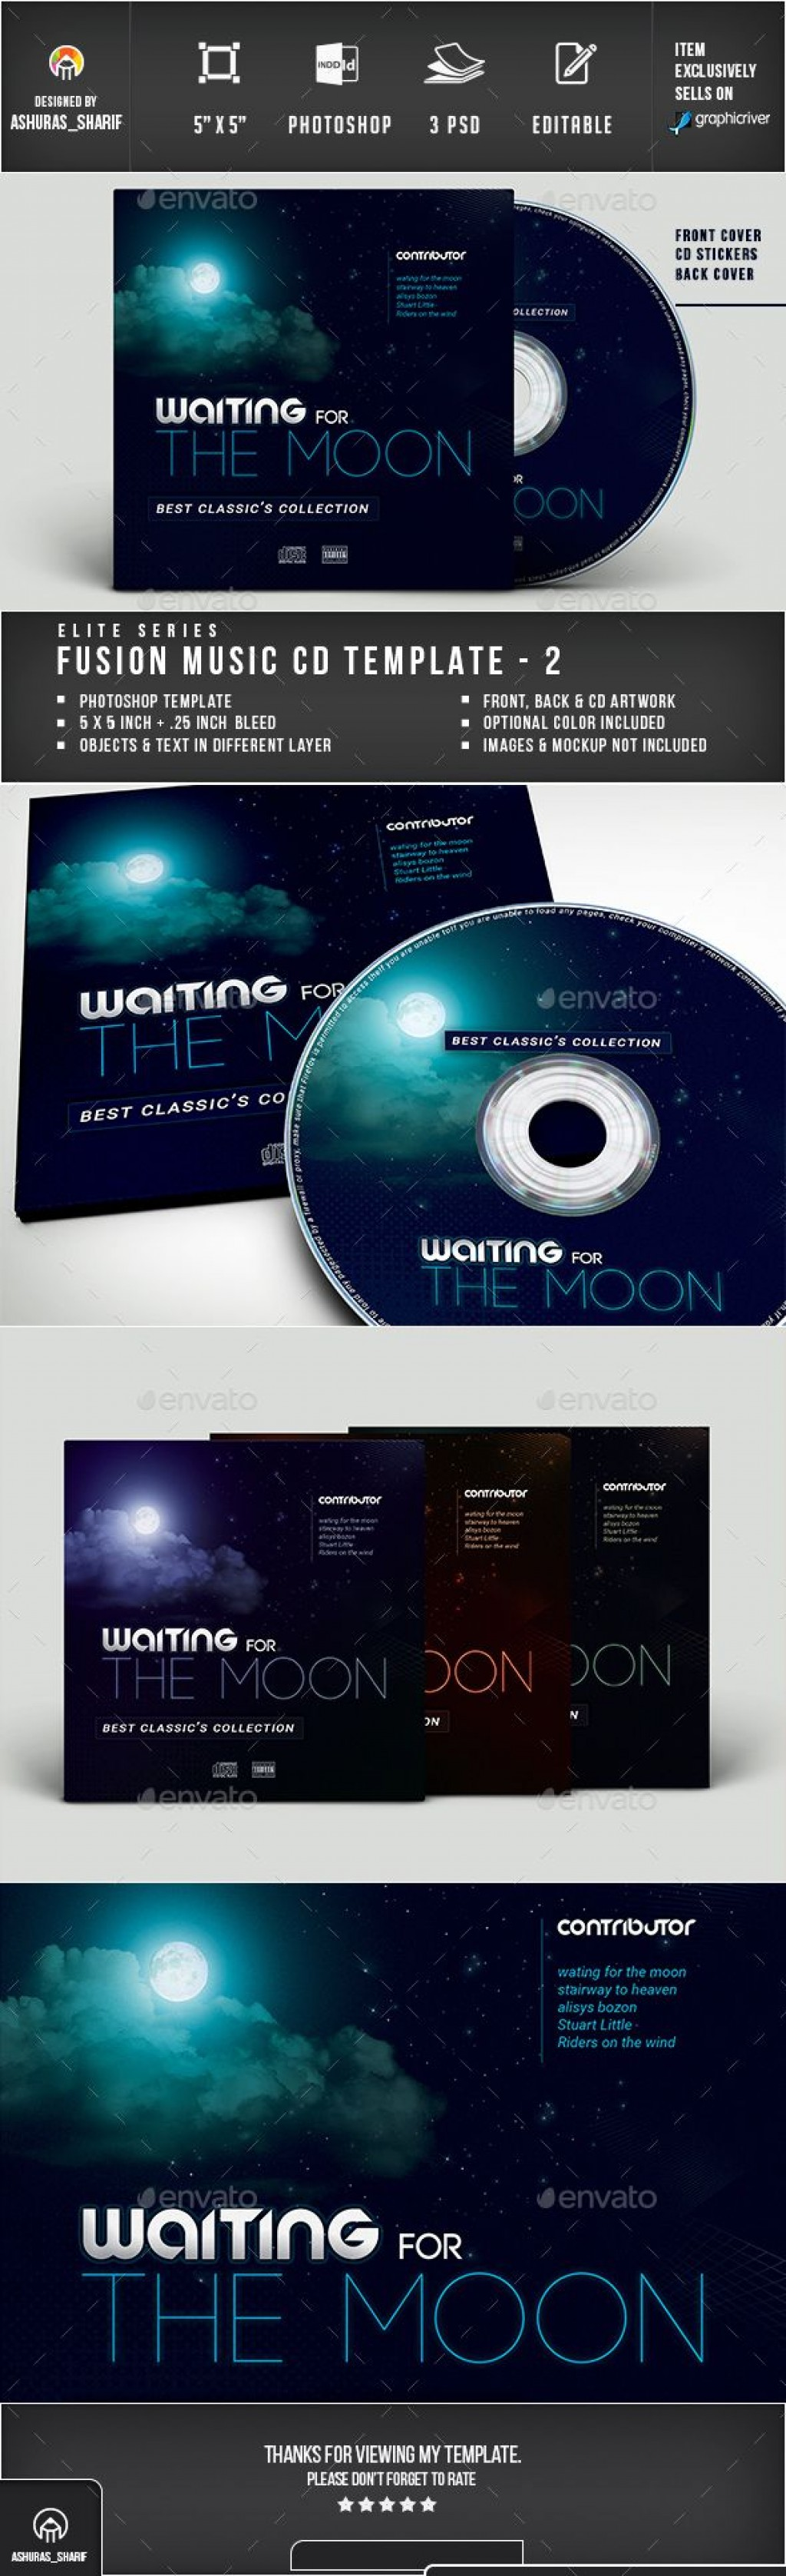 006 Impressive Cd Cover Design Template Photoshop Example  Label Psd FreeLarge